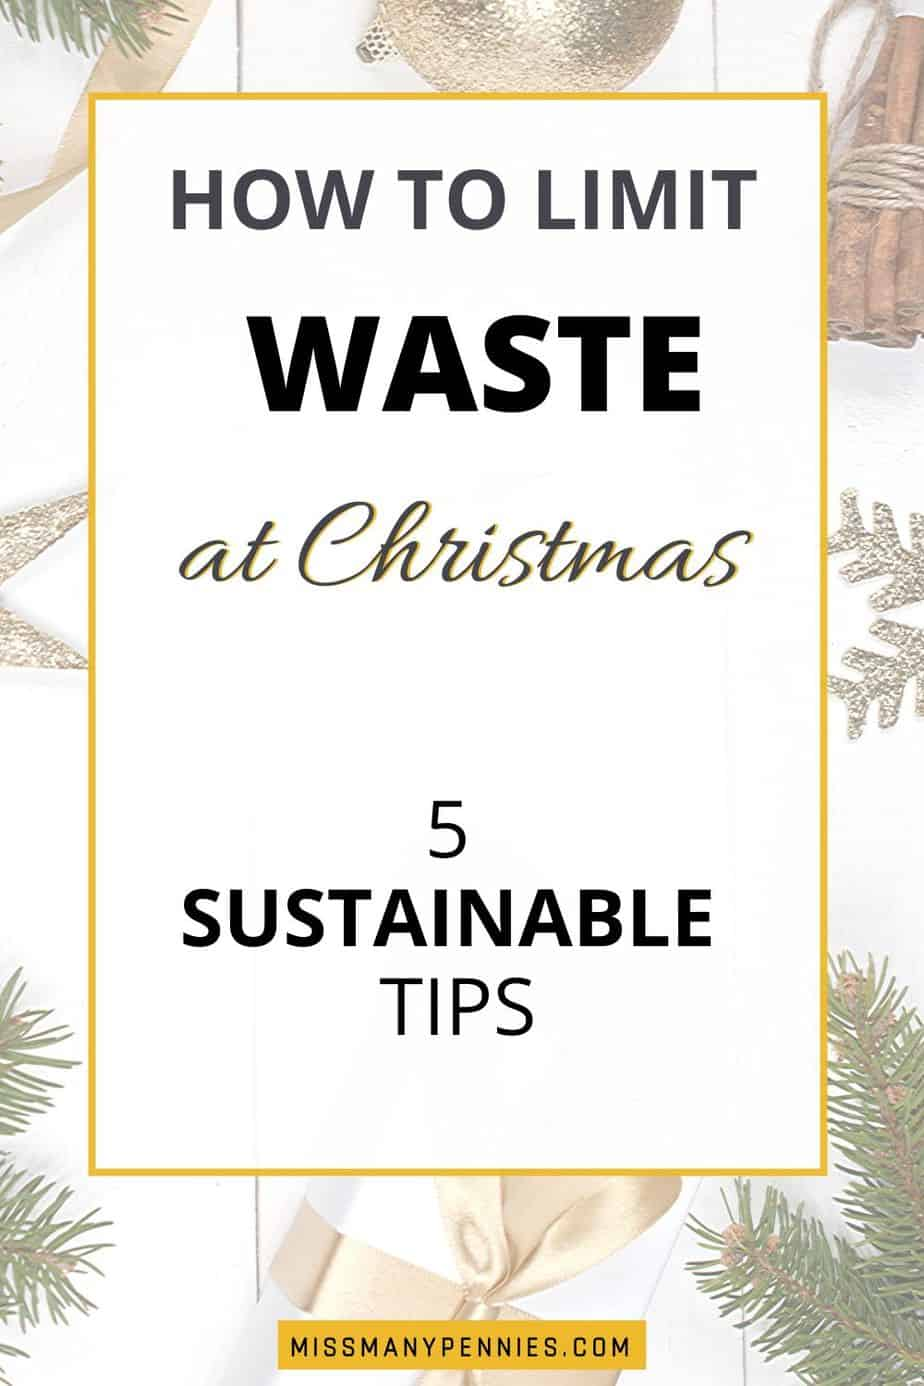 how to limit waste at Christmas